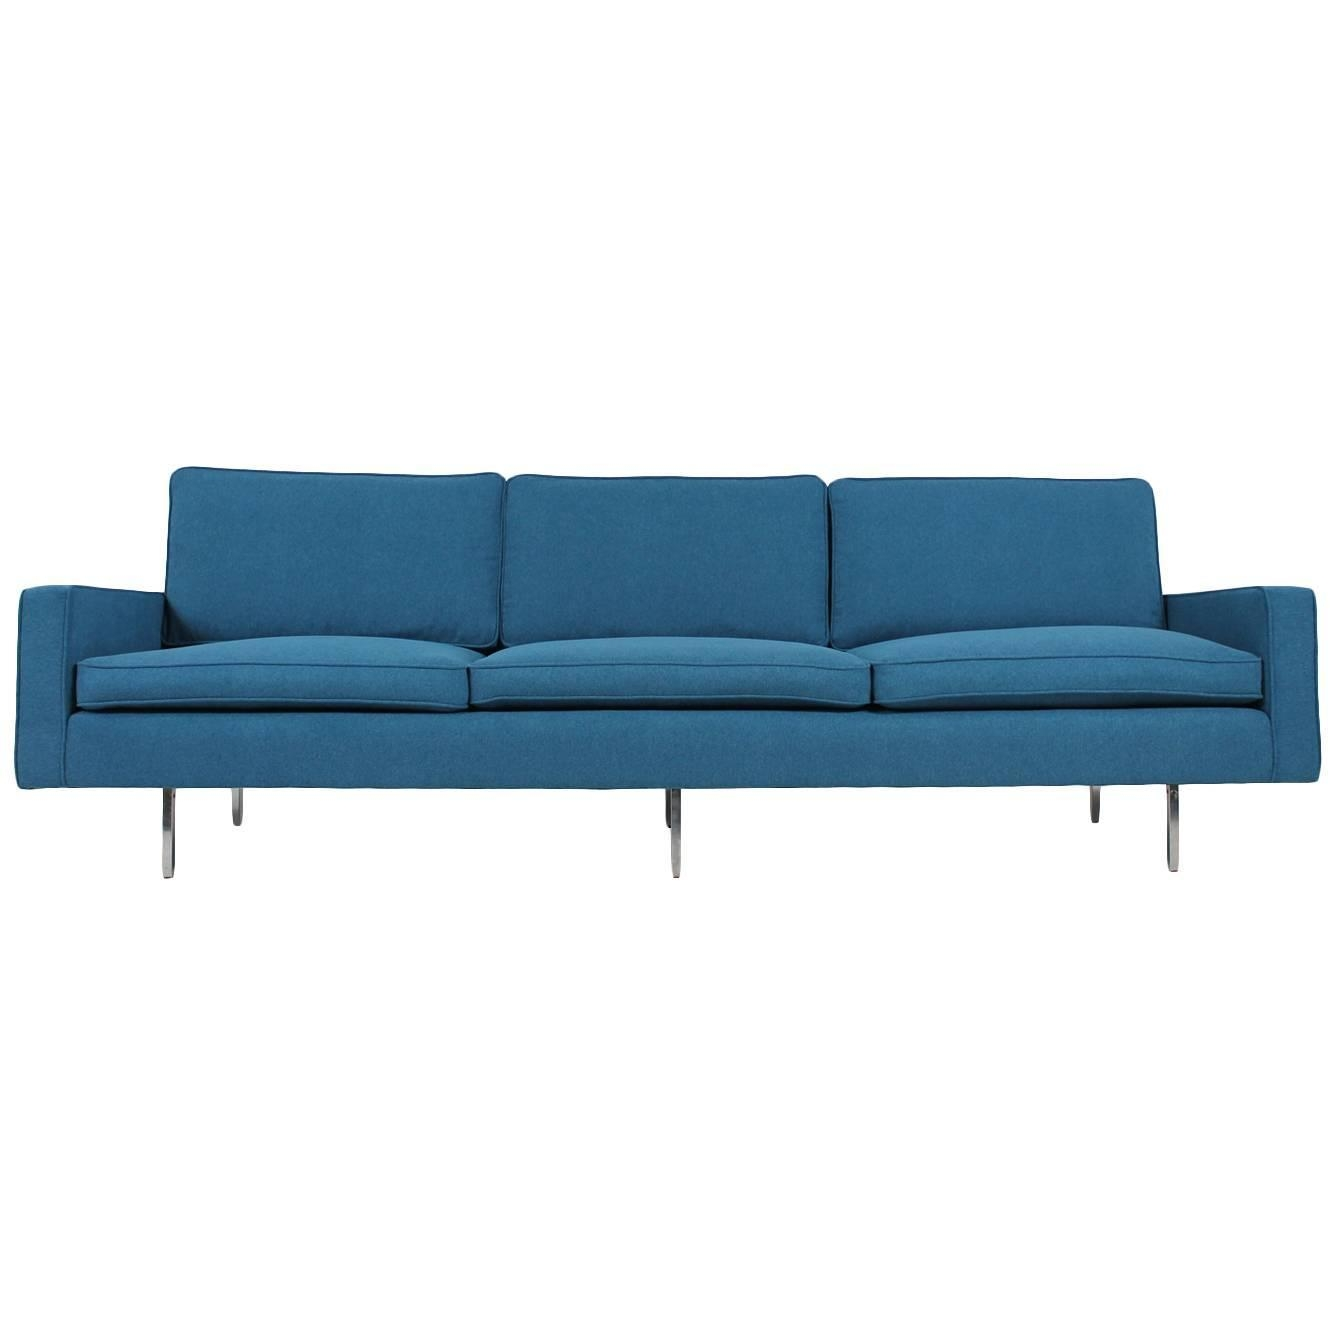 Beautiful Mid Century Florence Knoll Sofa Mod 25 Bc Knoll Regarding Florence Knoll Style Sofas (View 4 of 15)